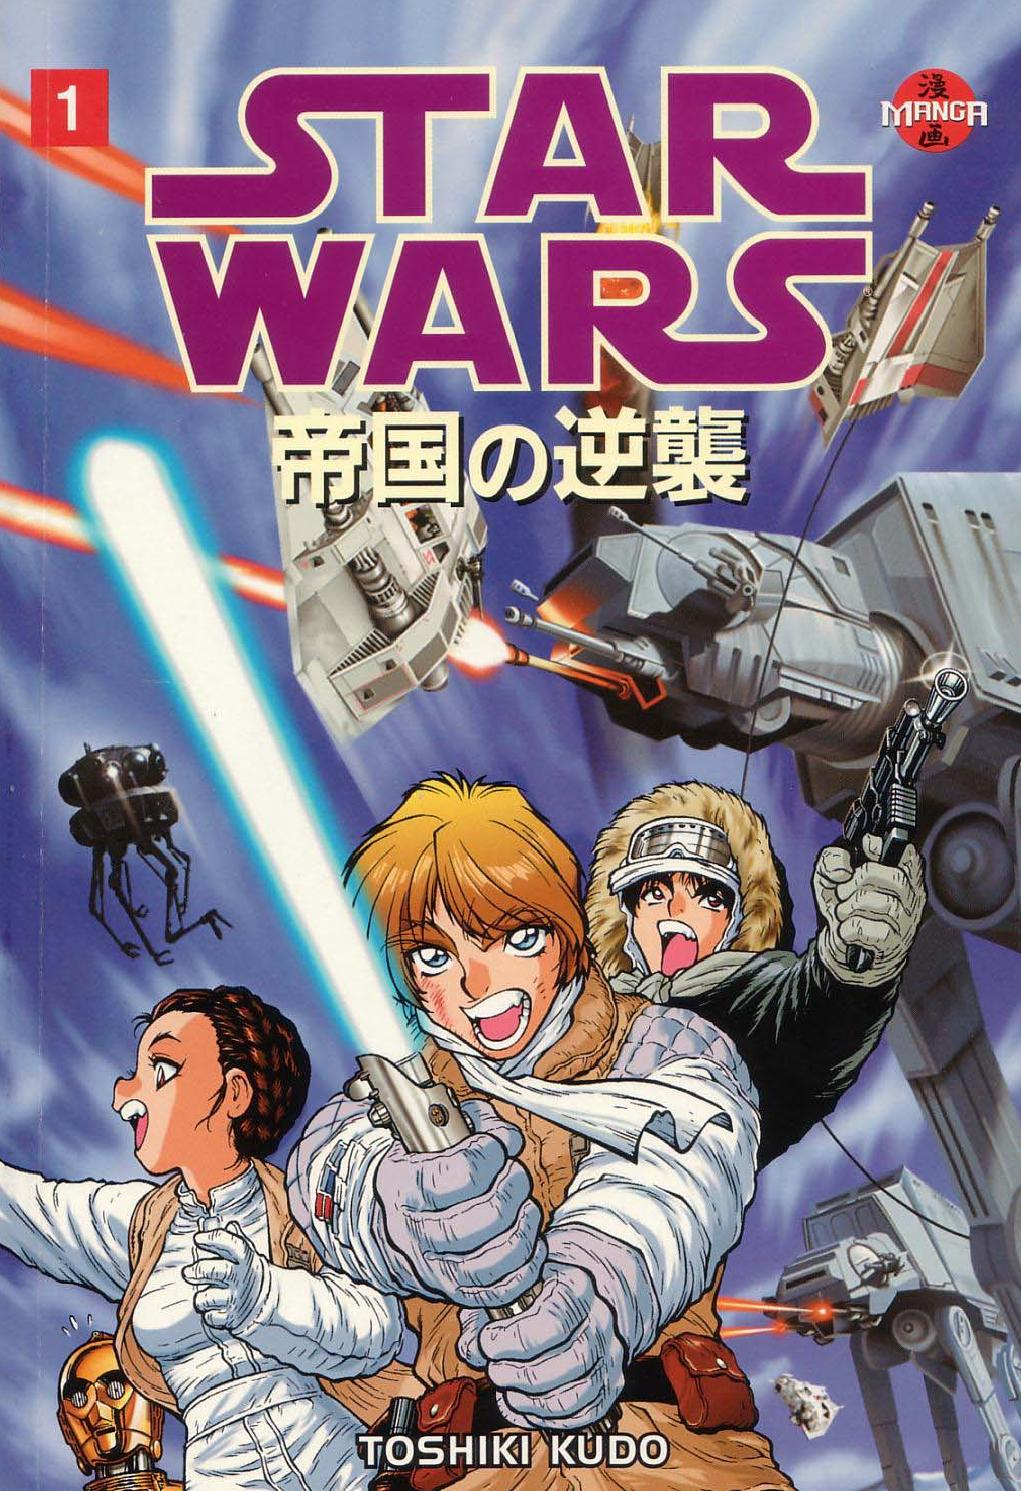 Star Wars Manga: The Empire Strikes Back